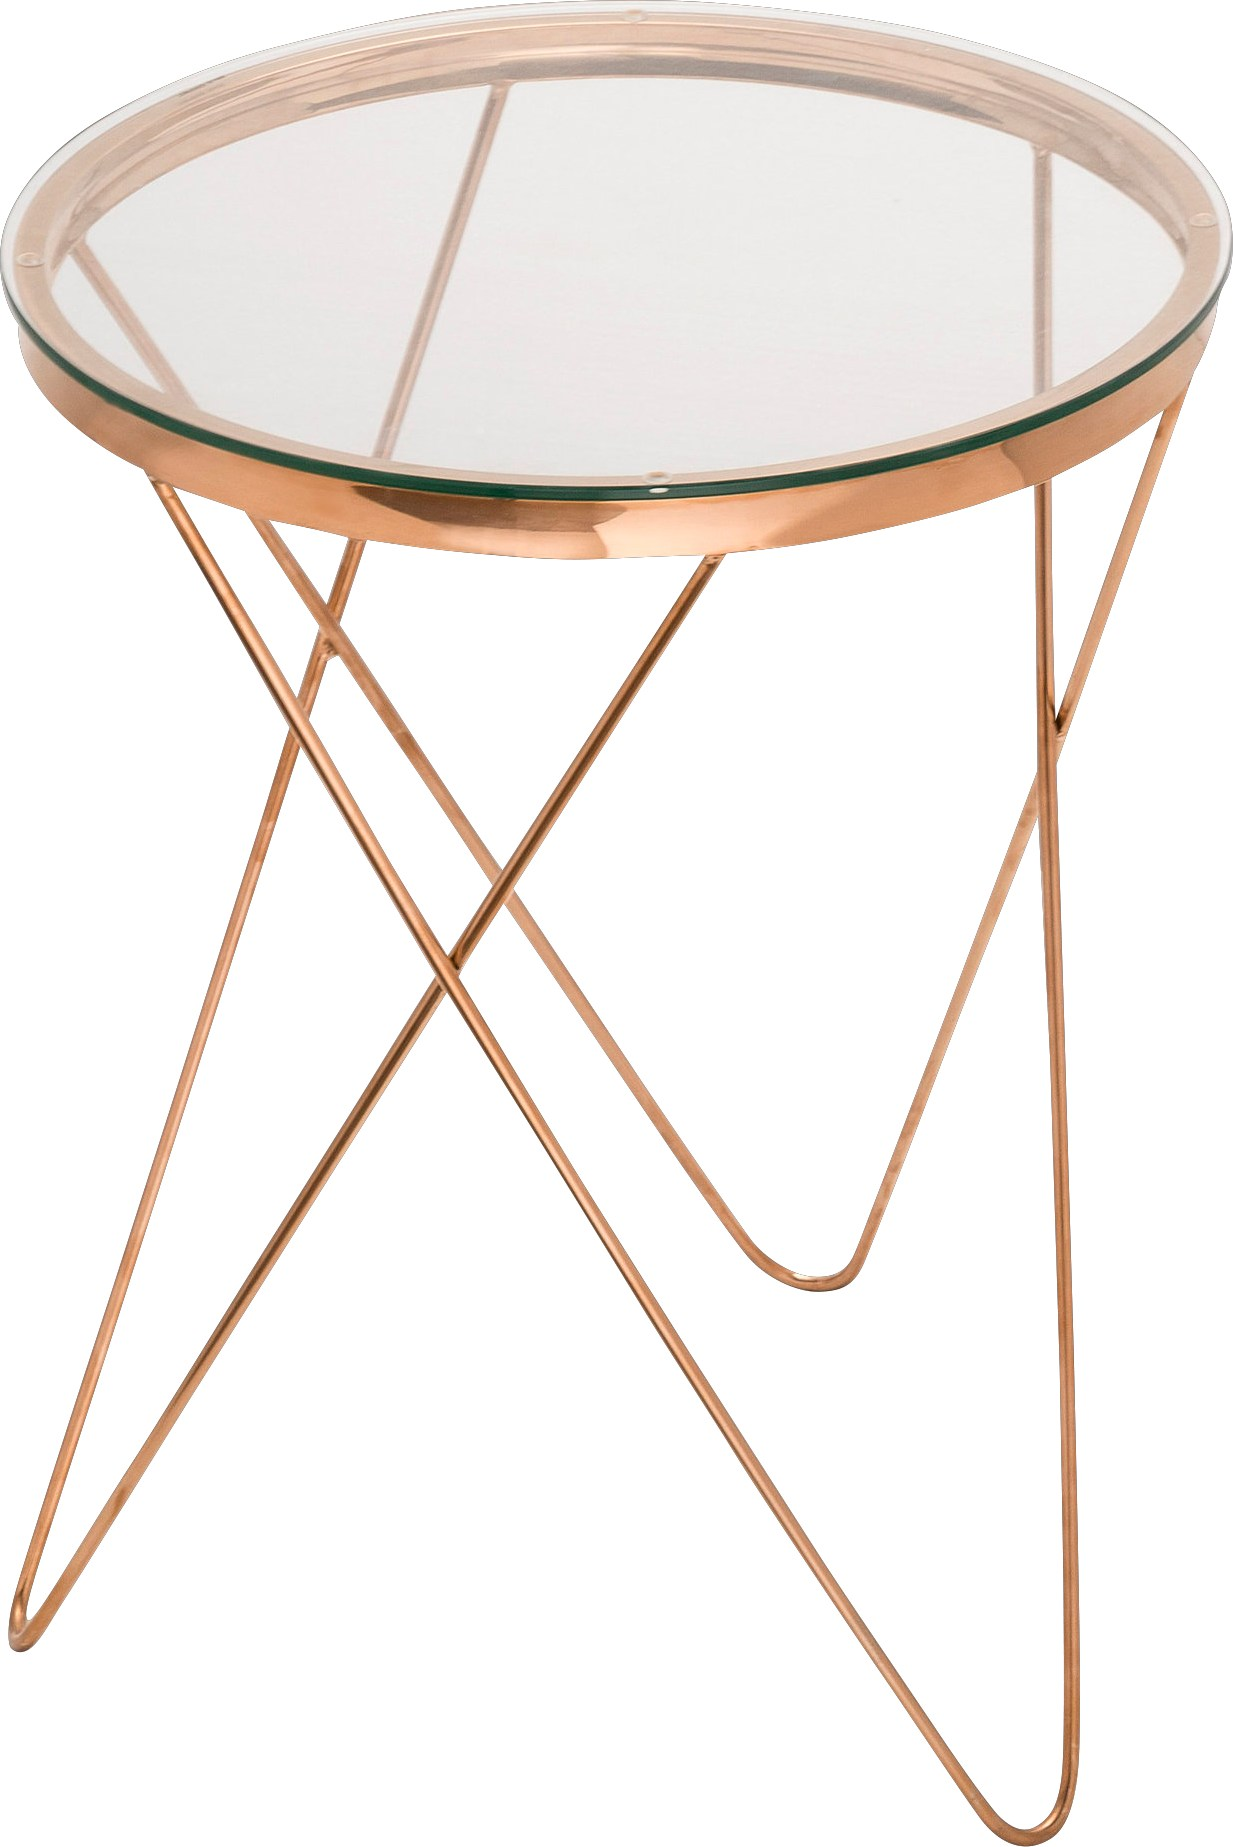 starla rose gold accent table tables rosegold safavieh coffee legs heavy duty umbrella stand aamerica furniture storage cabinet with doors mirror top side target mirrored drawer